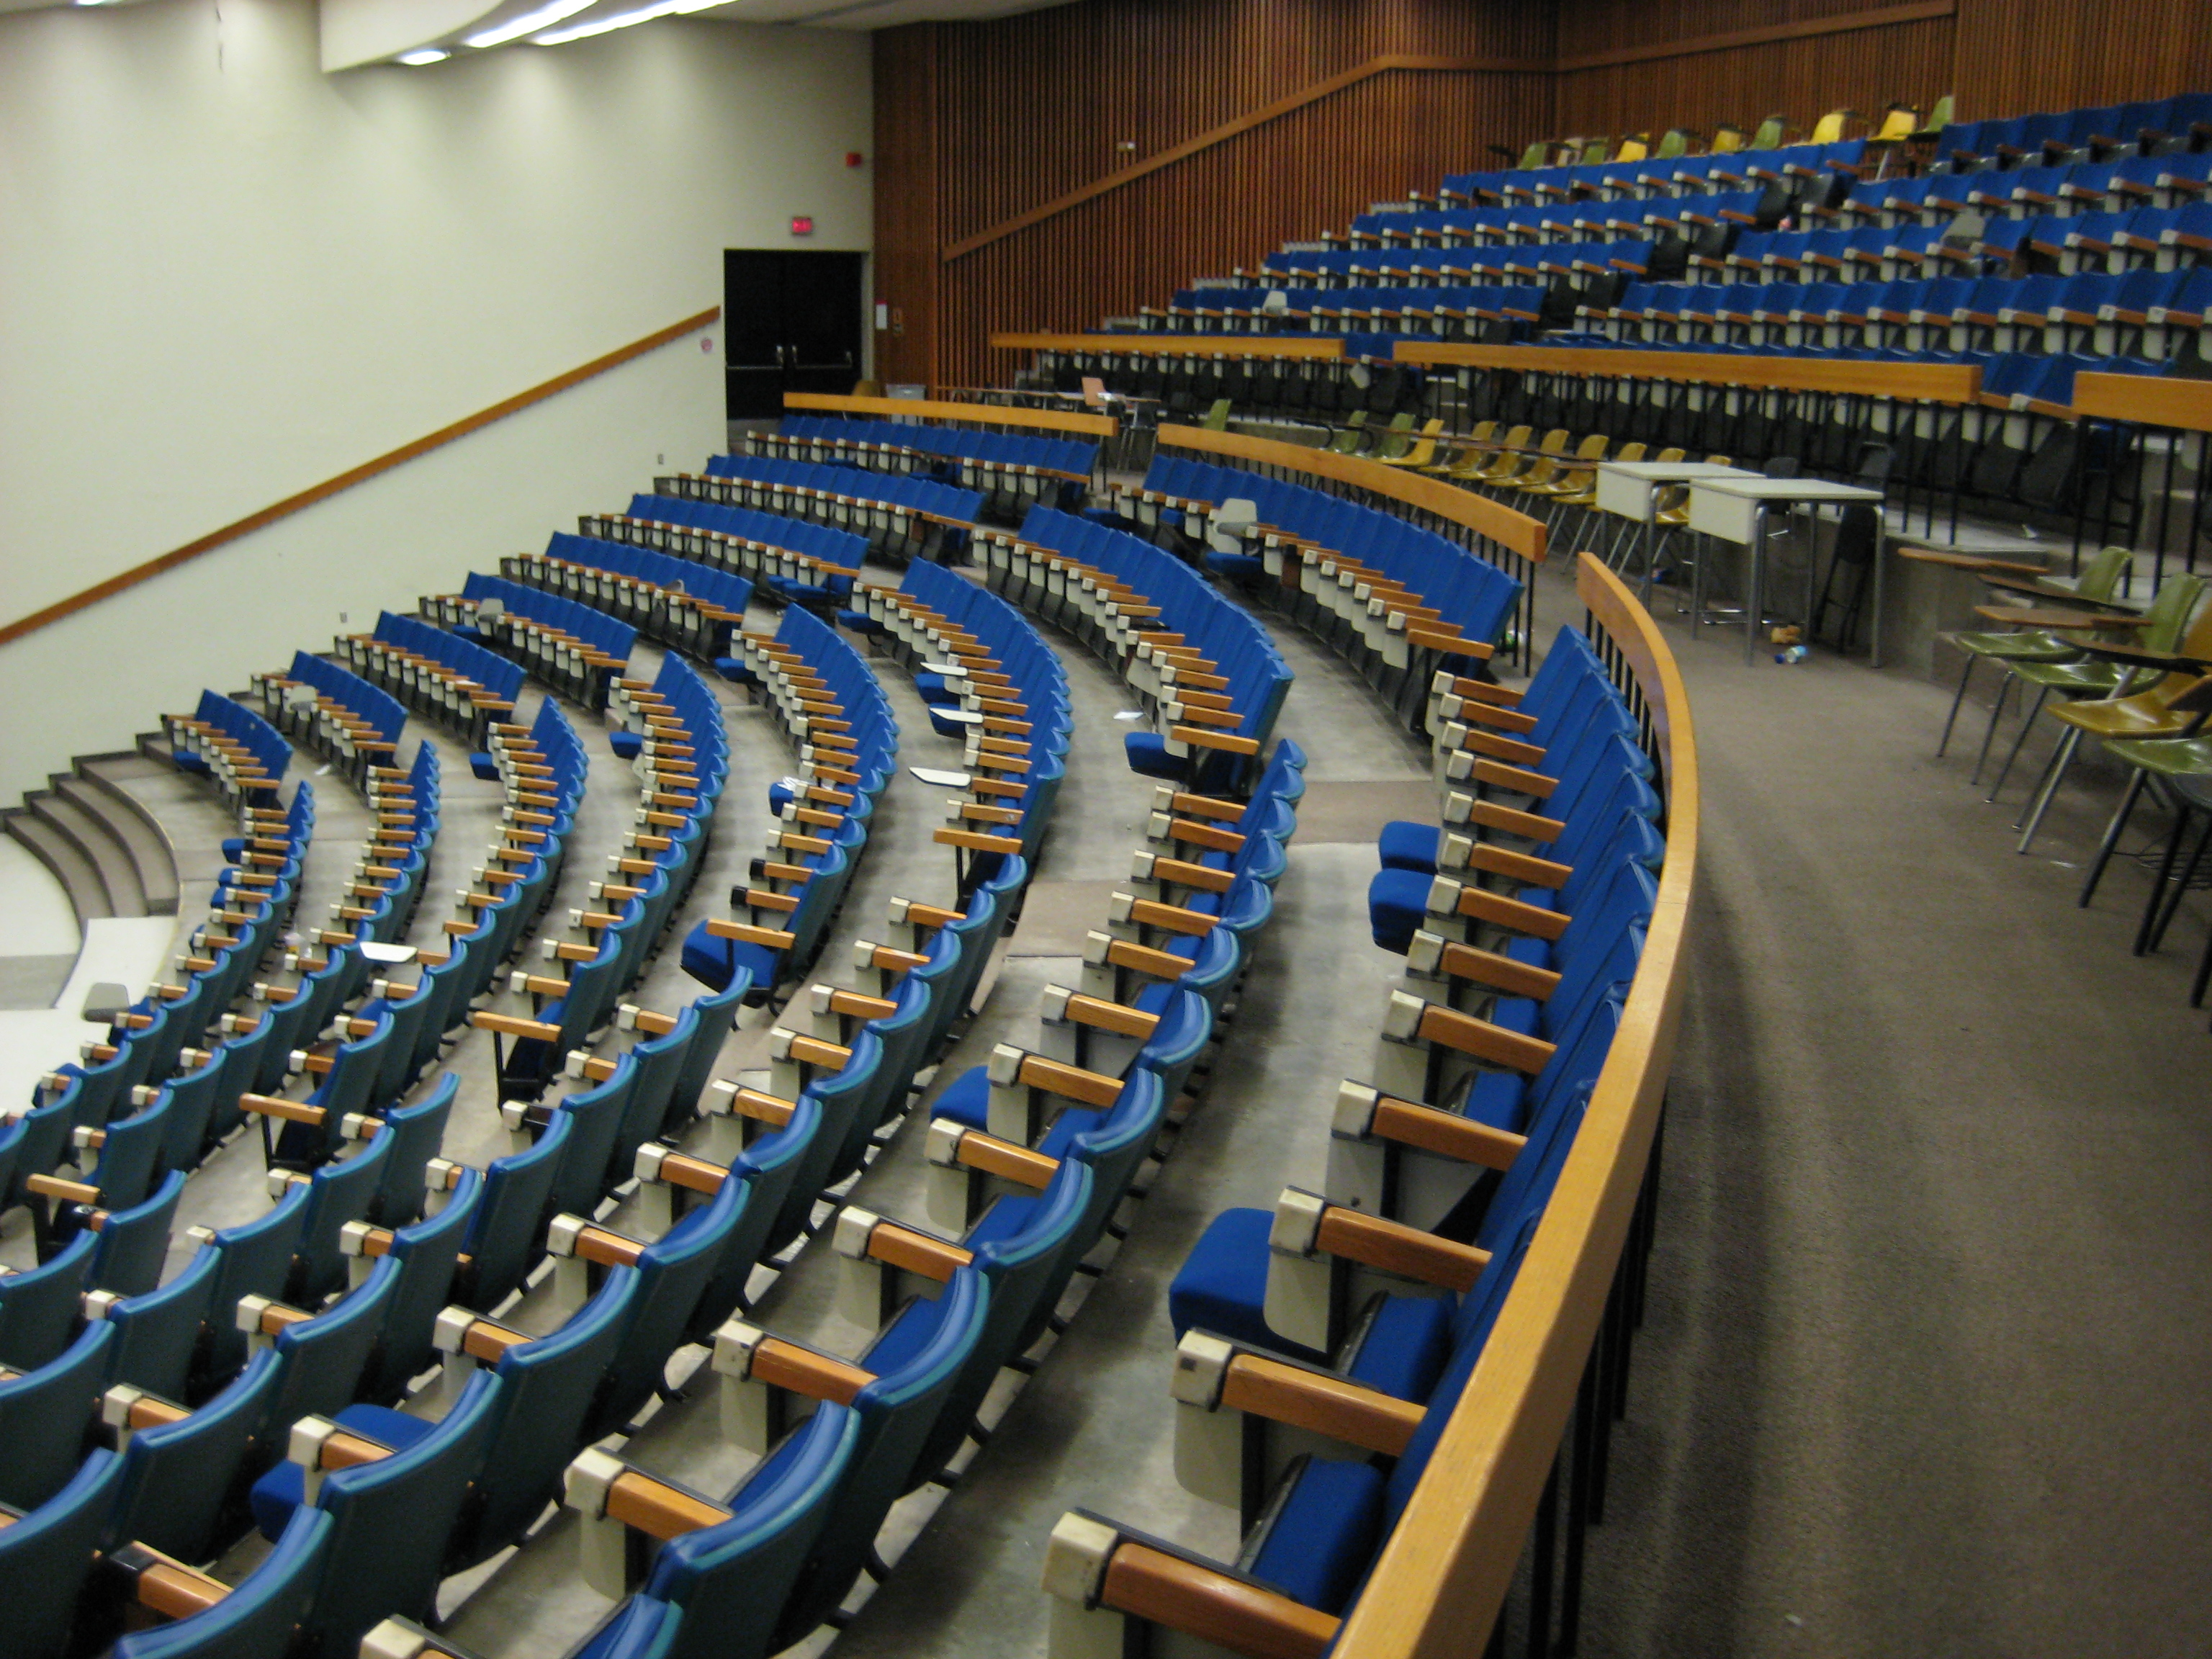 Curtis Lecture Halls interior view2 empty class